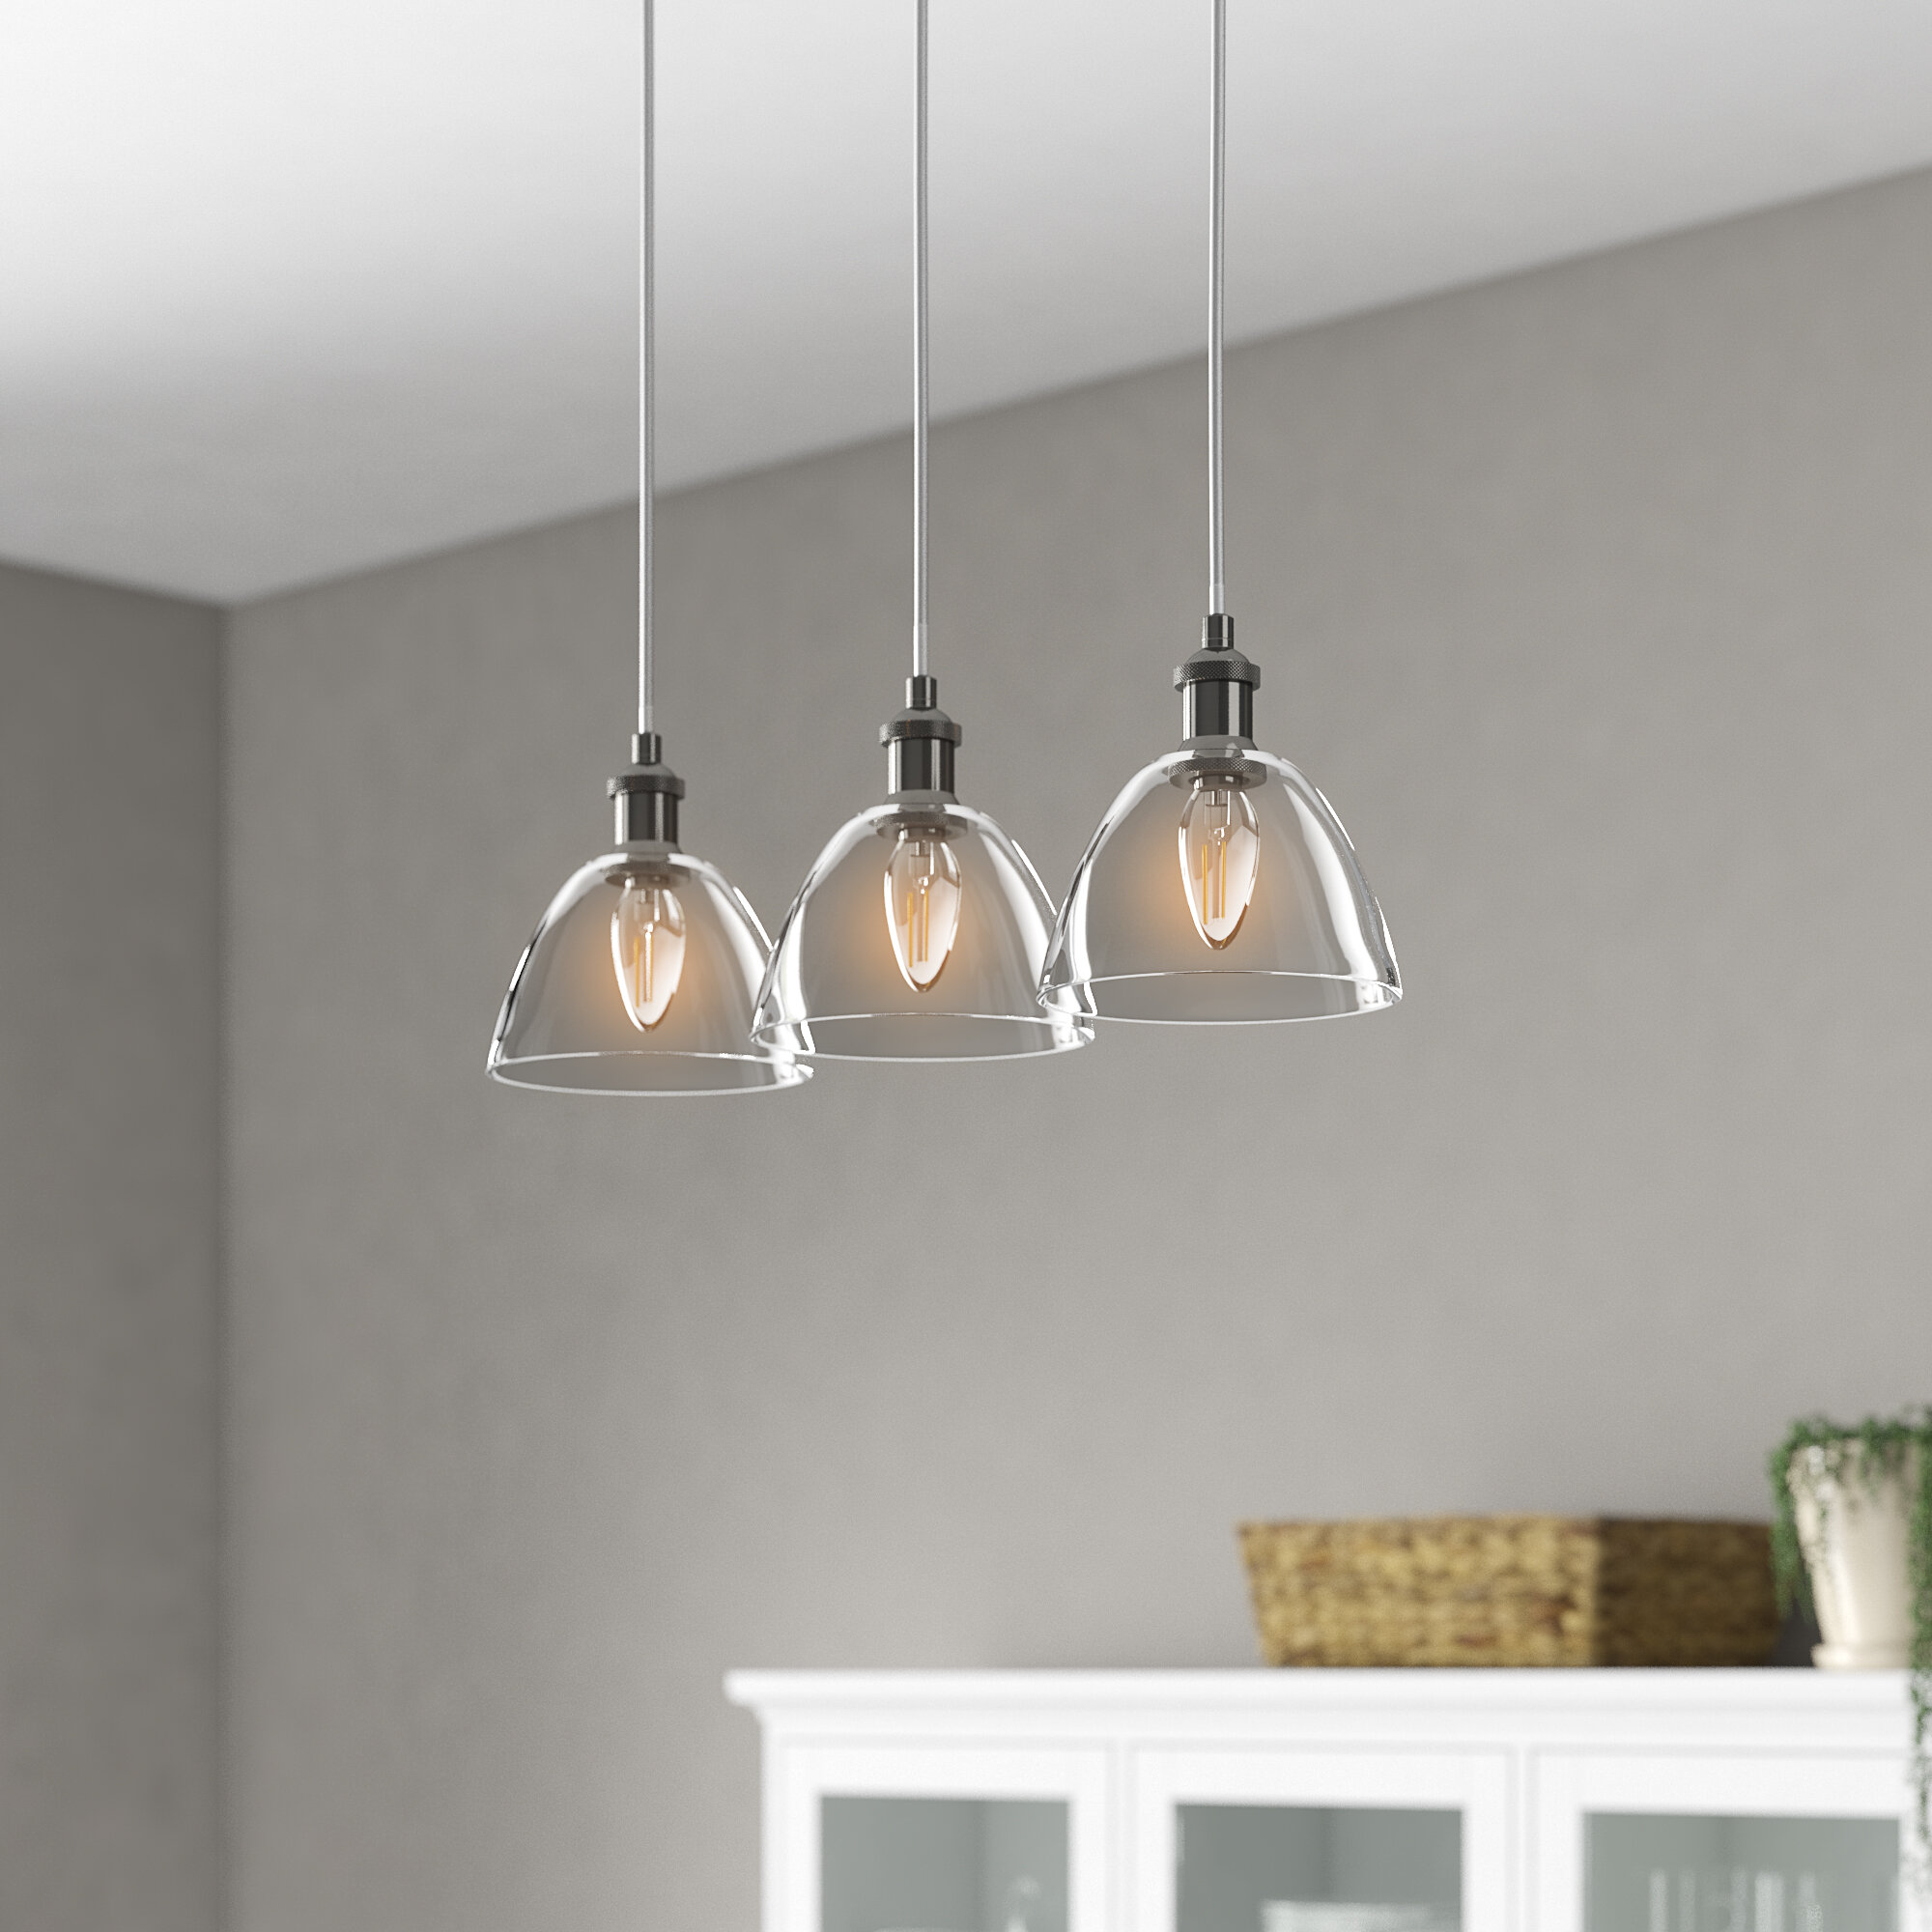 Marlow Home Co Mellen 3 Light Kitchen Island Pendant Reviews Wayfair Co Uk